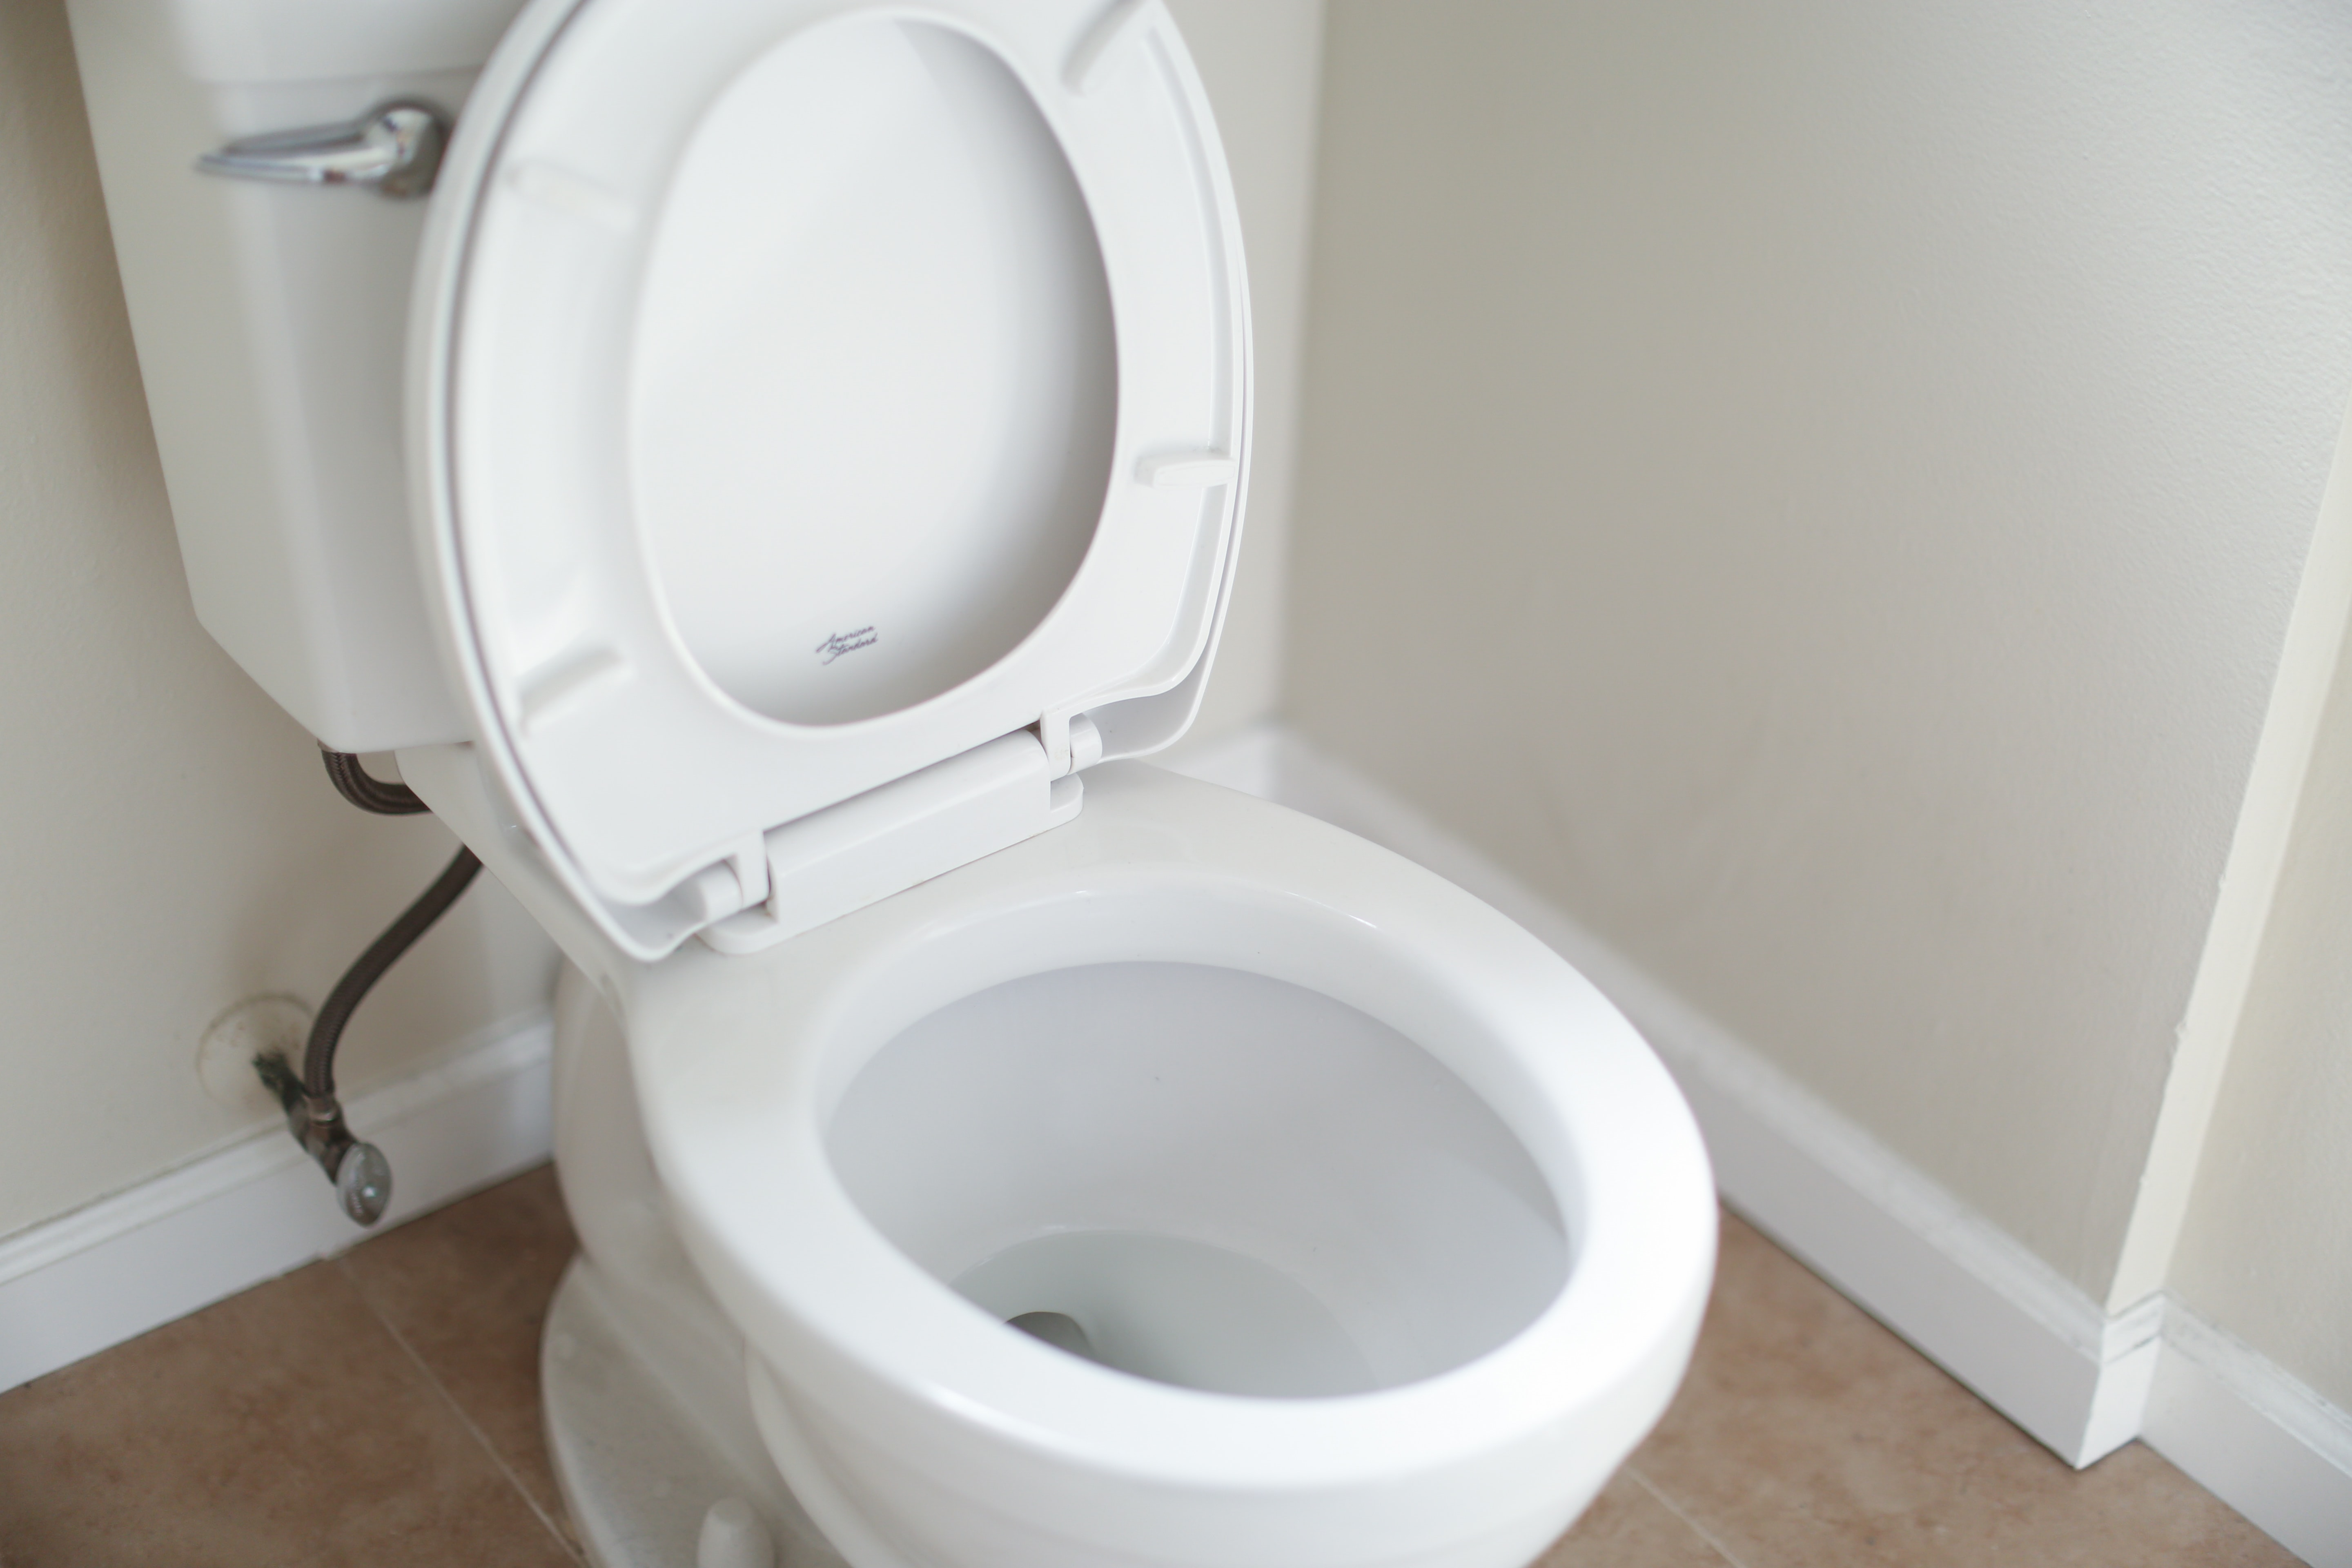 Put the lid down when you flush.